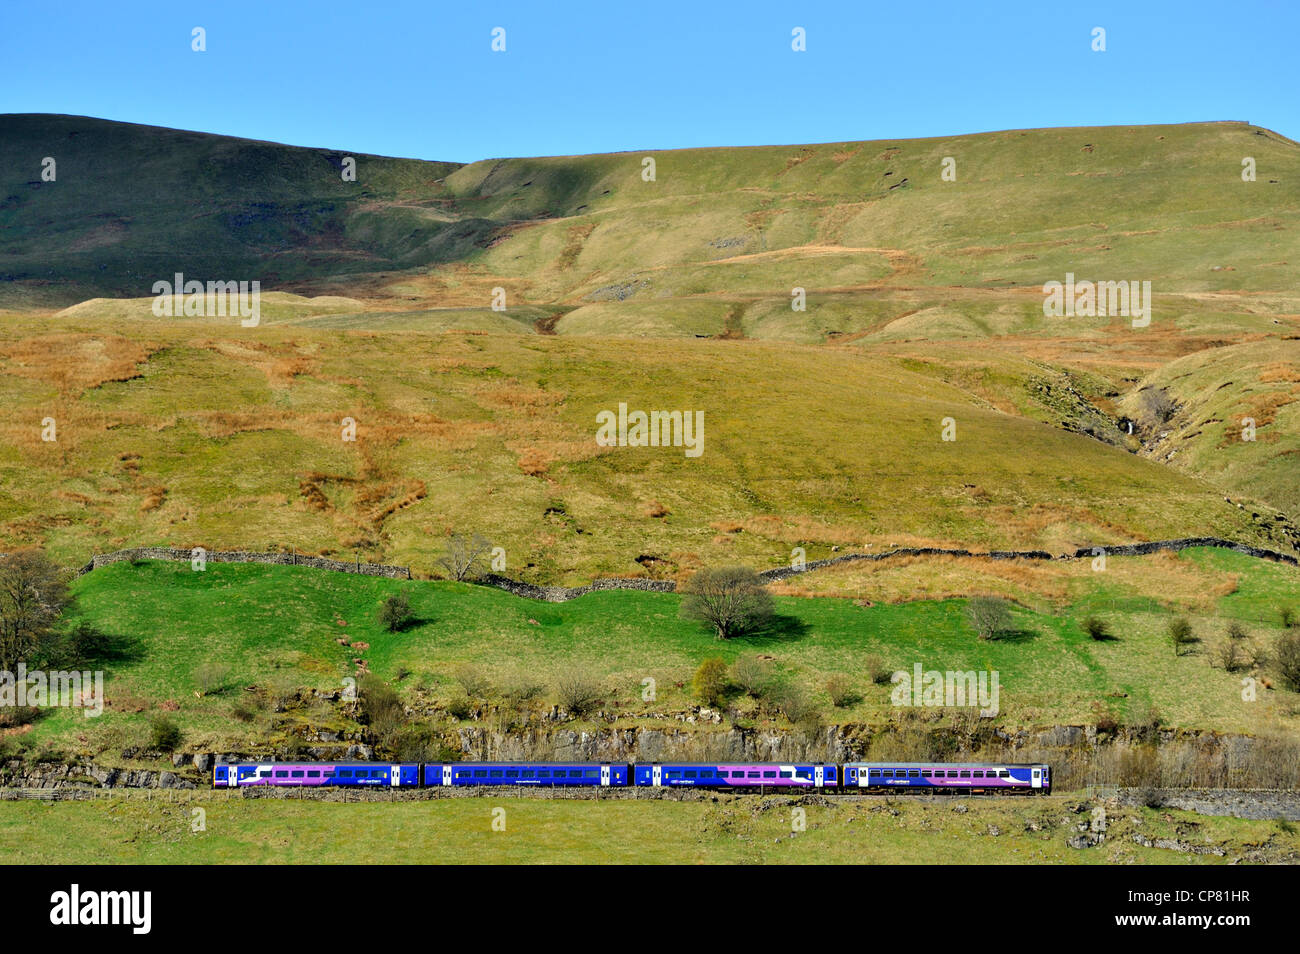 Northern Rail pasenger train on Settle to Carlisle line. Mallerstang, Yorkshire Dales National Park, Cumbria, England, - Stock Image